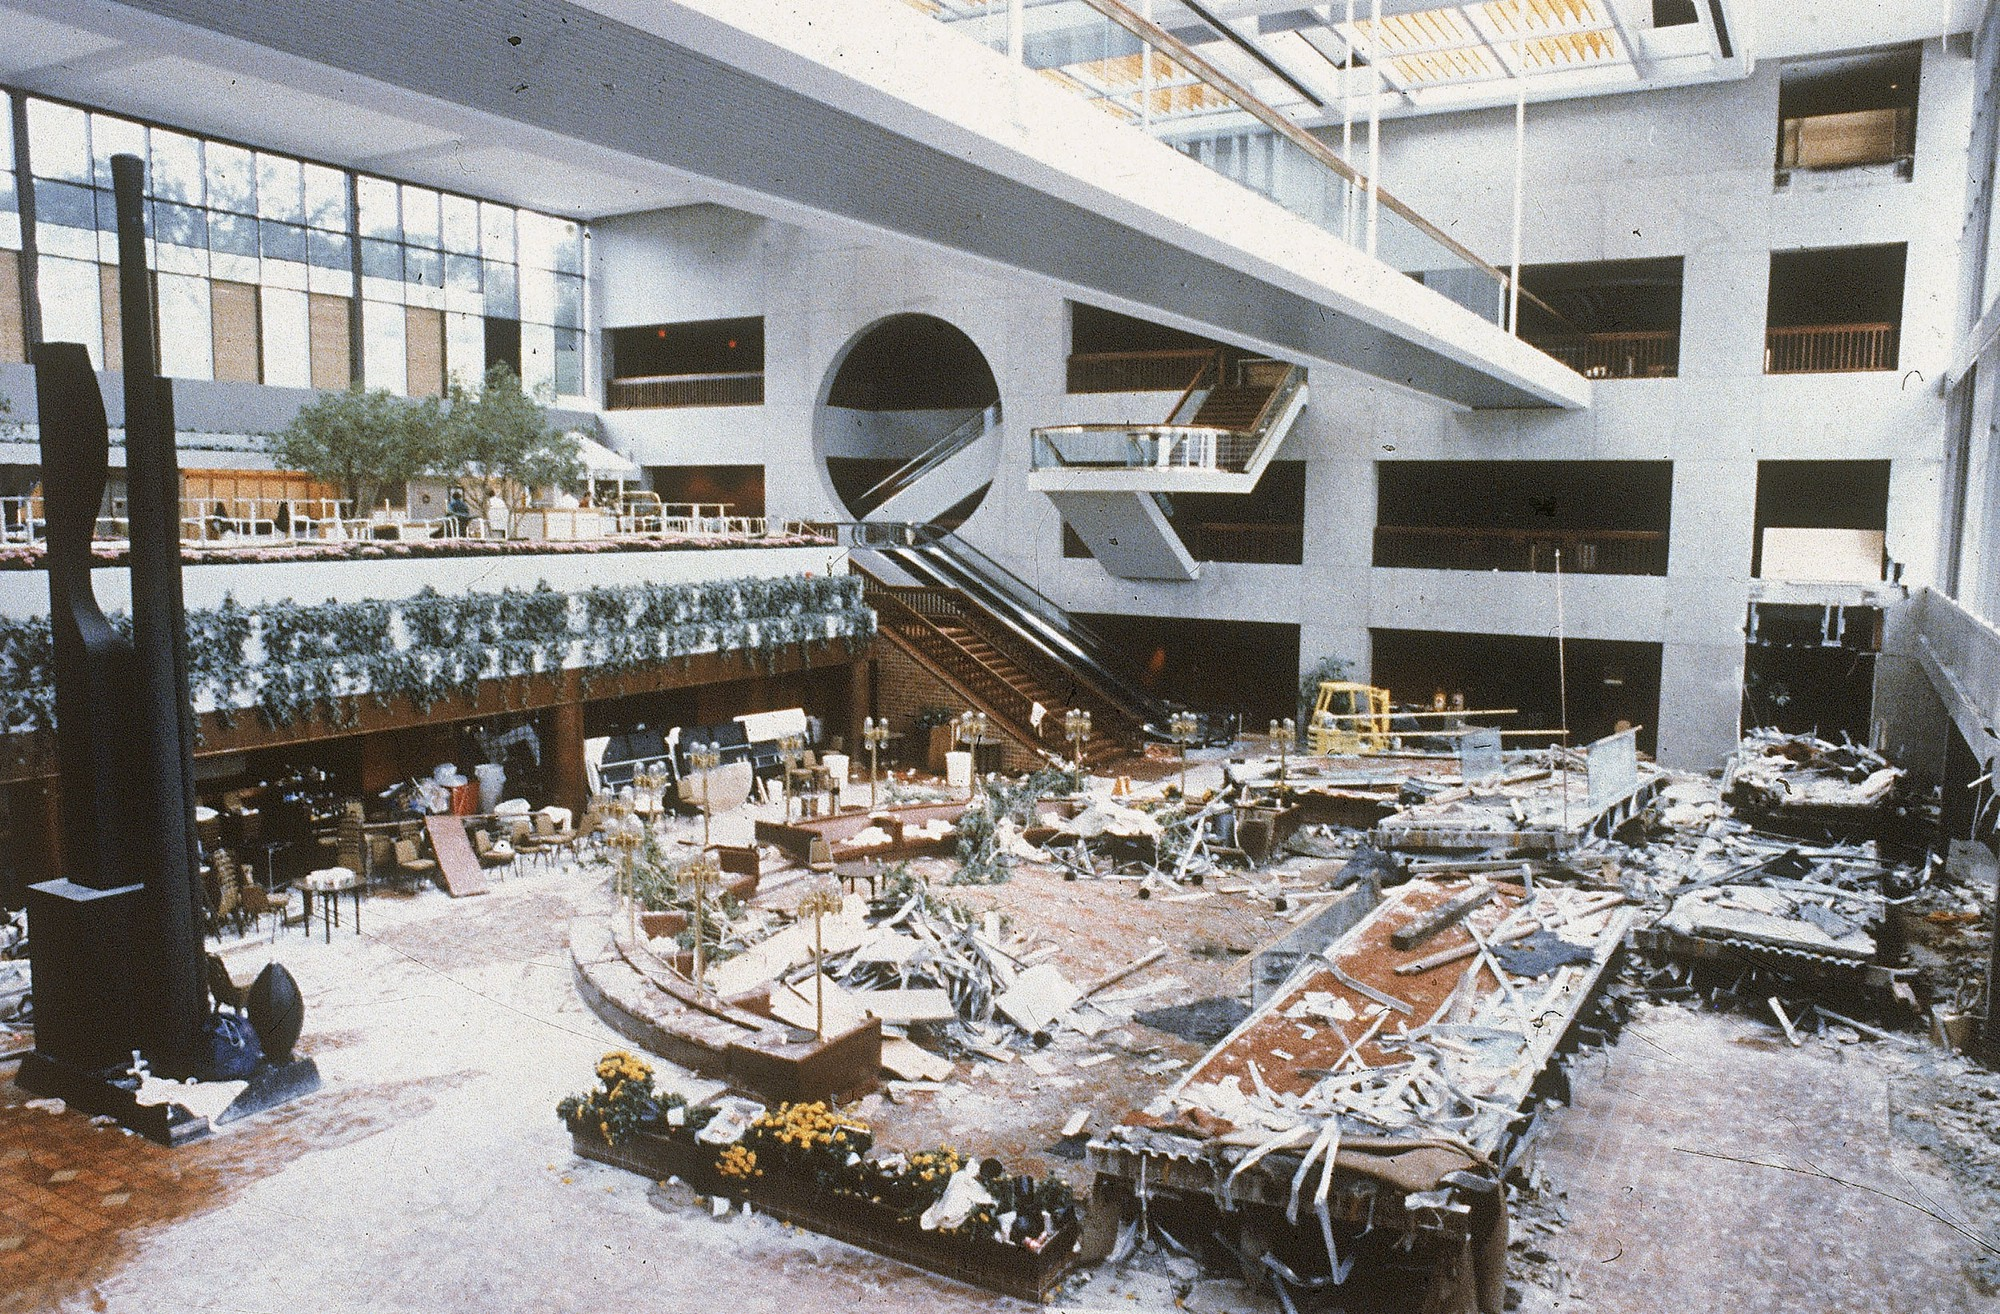 When This Hotel Skywalk Collapsed It Was One Of The Deadliest Structural Failures In Us History